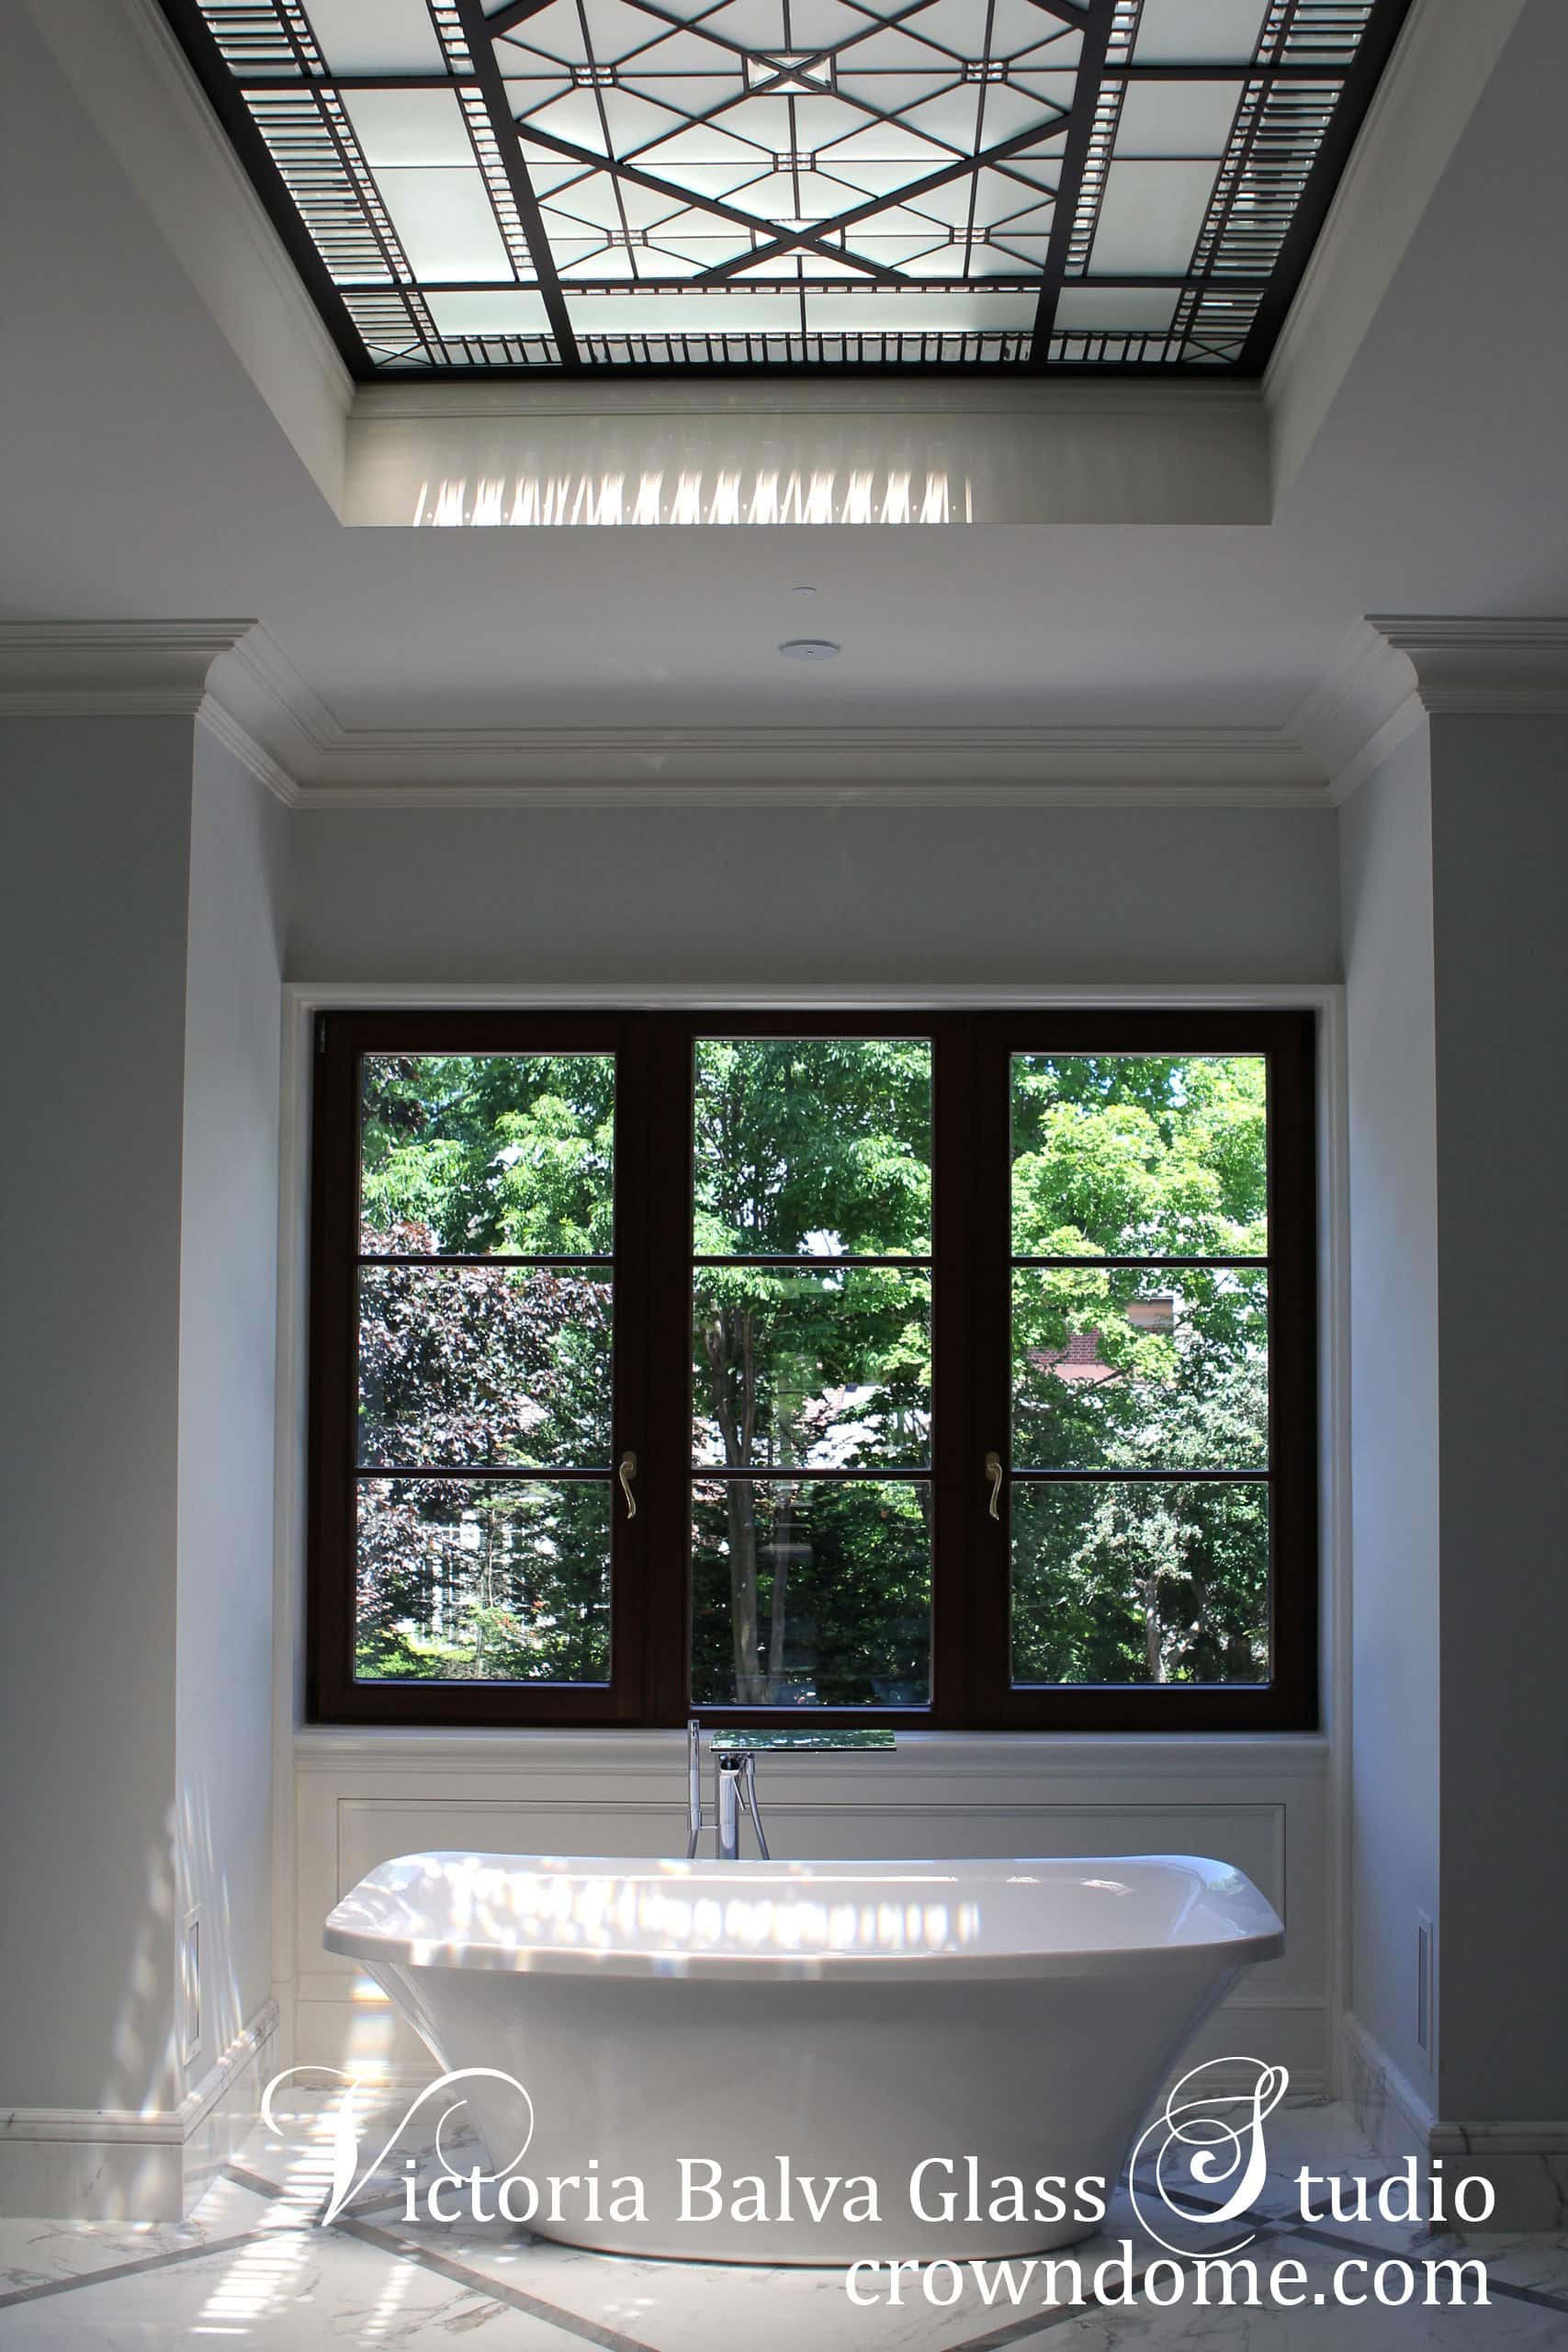 Bathroom interior with leaded glass skylight ceiling Leaded glass skylight design inspired by the historical leaded glass skylights of Great Britain Castles. Clear textured glass, beveled glass, simple geometrical design. Leaded glass skylight design by stained glass artist Victoria Balva